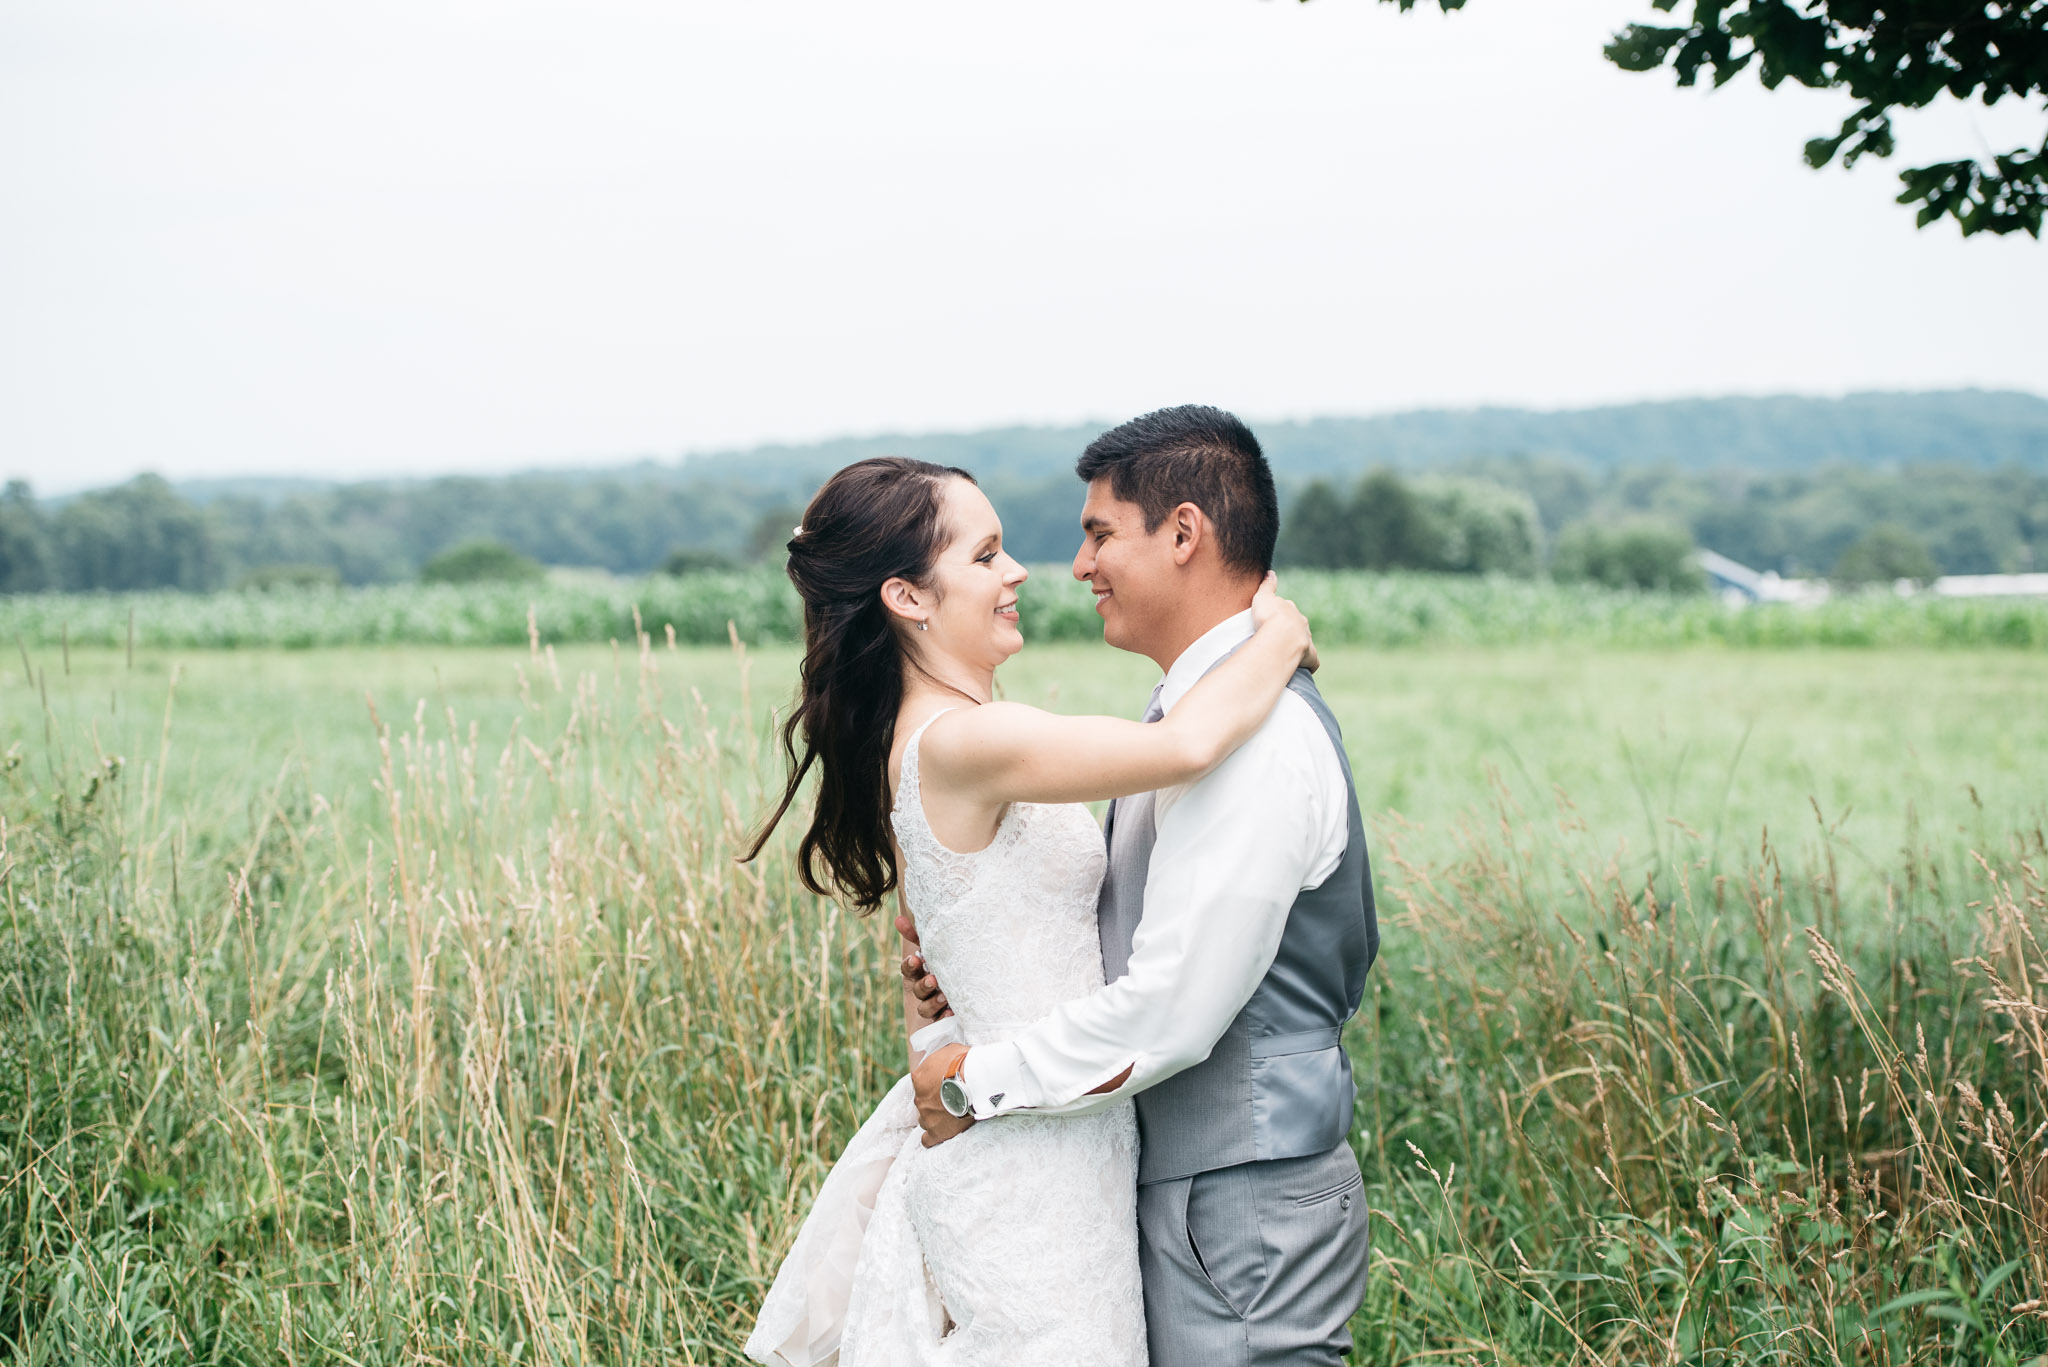 Bridal Portraits, Pittsburgh Wedding Photographer, The Event Barn at Highland Farms, Somerset PA-9482.jpg